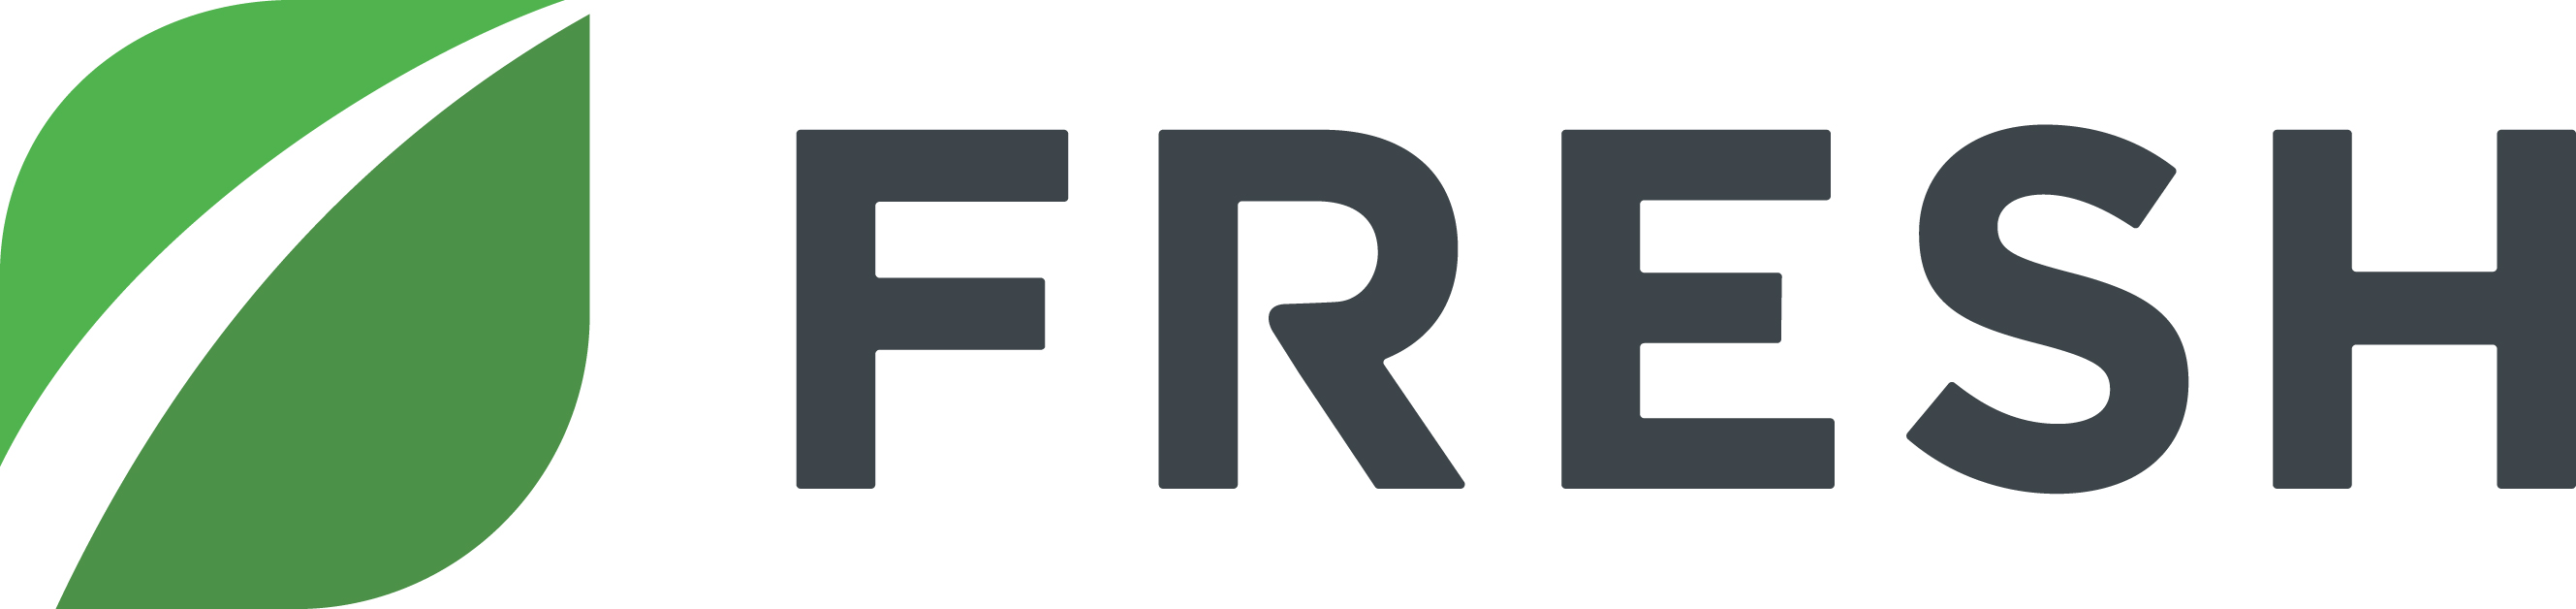 LabVIEW Developer - Fresh Consulting - Career Page